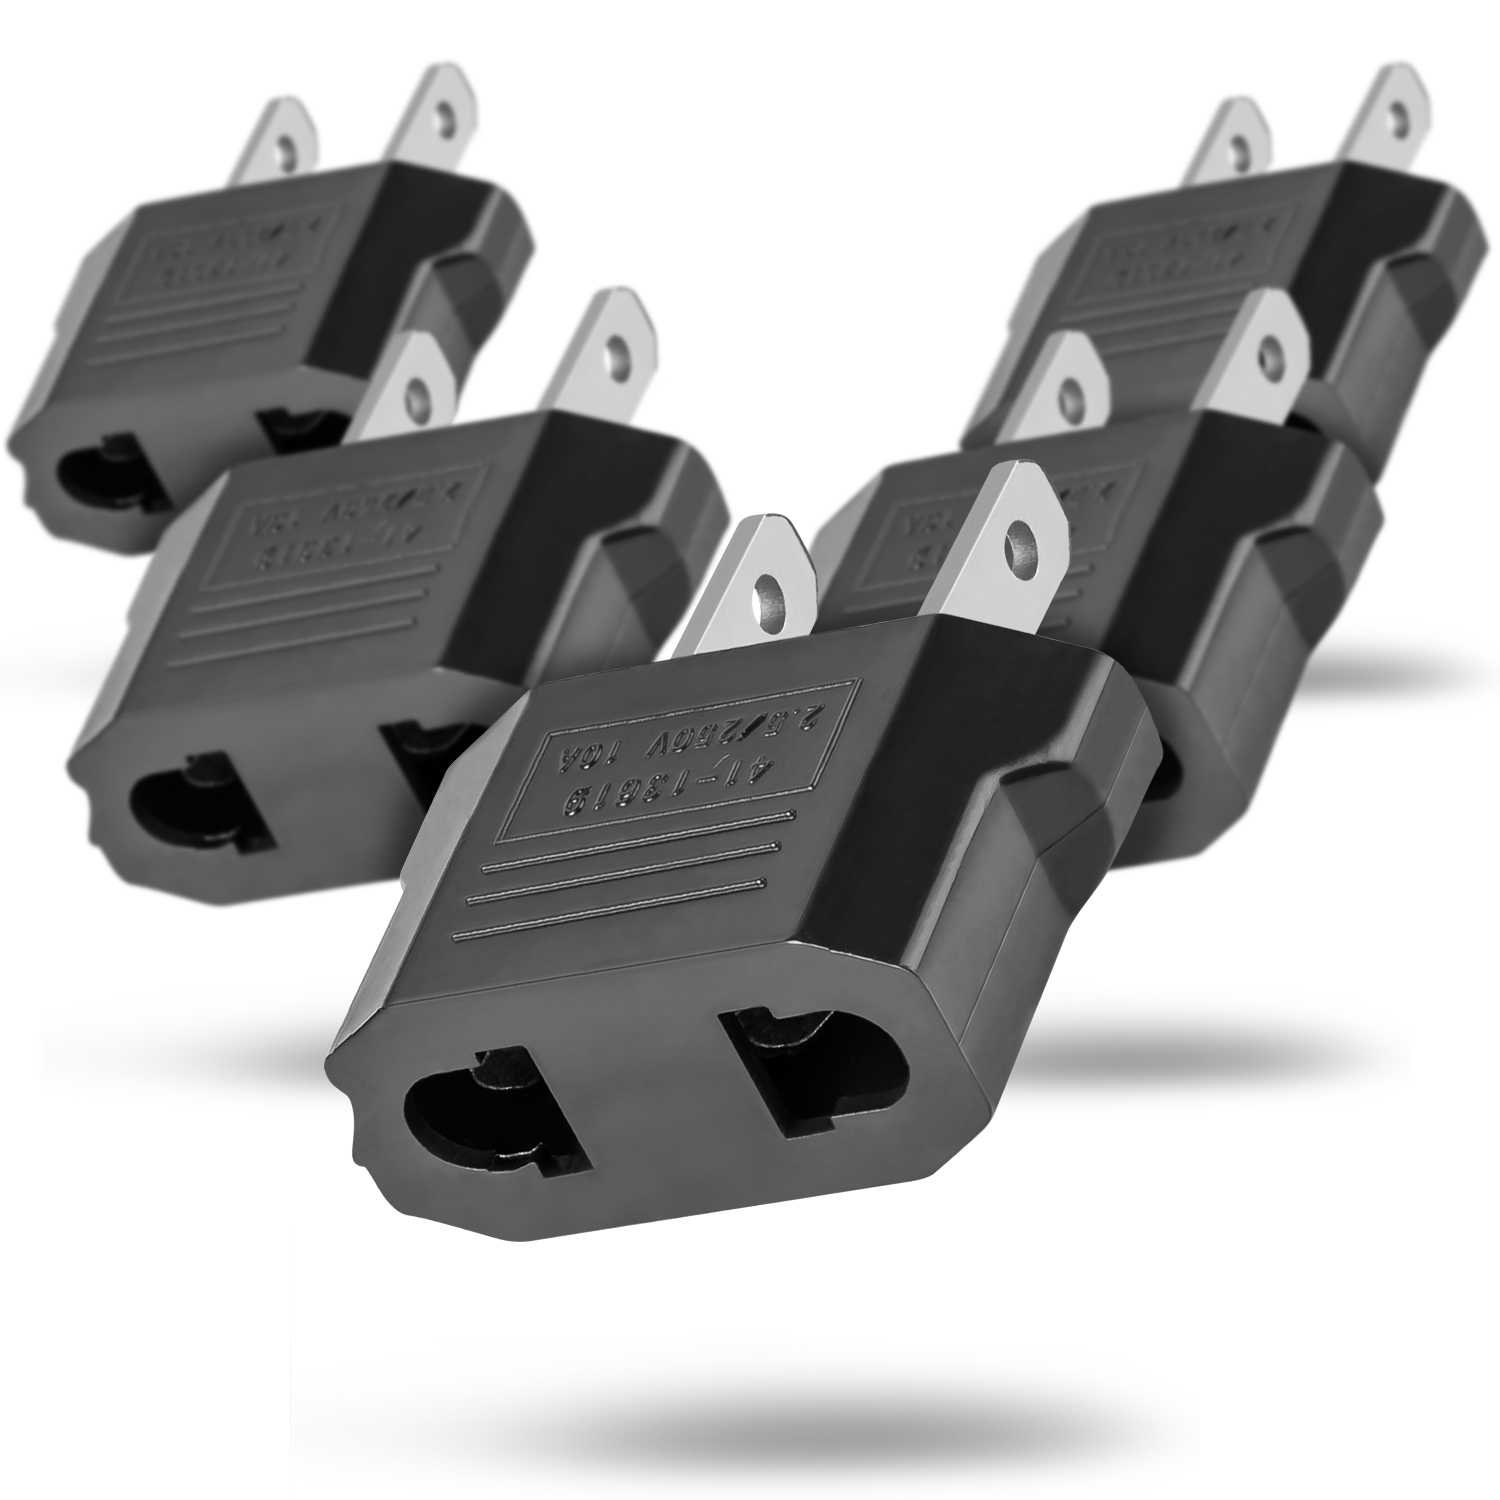 European Adapter 5 Pack, Fosmon Type C EU to USA & Canada Travel Adapter Plug, 2 Prong Universal Power Converter - Black